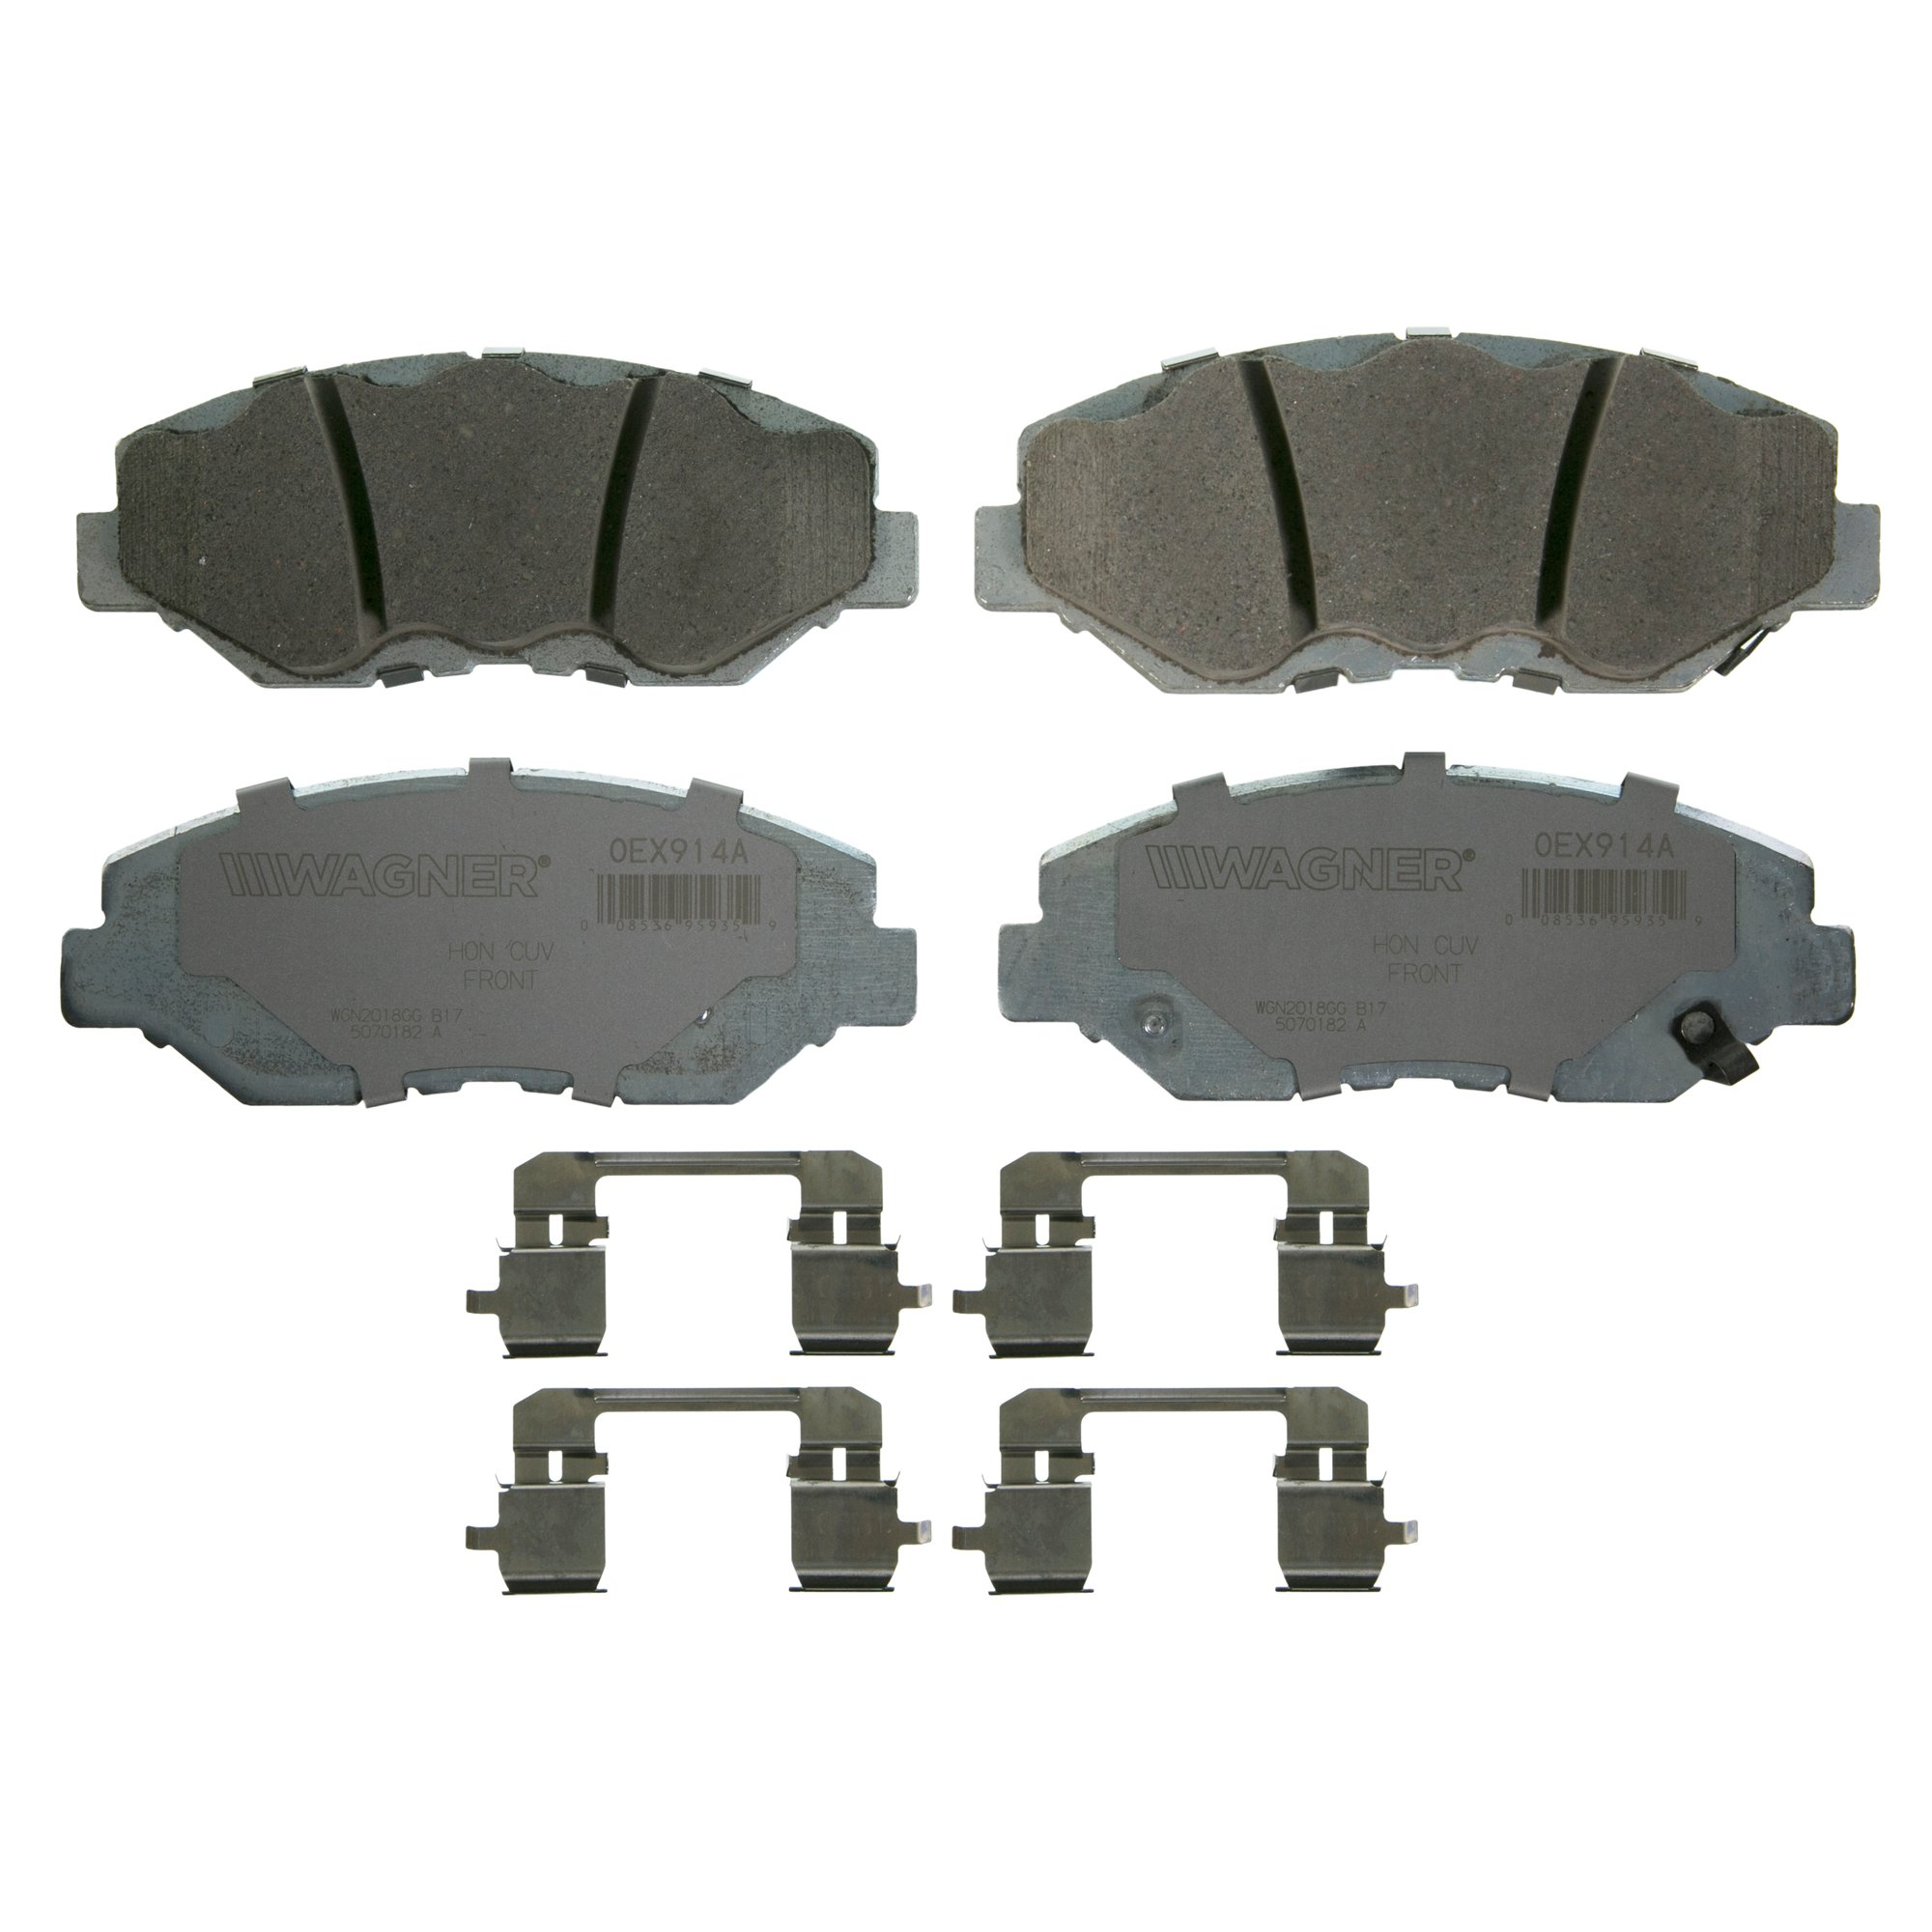 Details about Wagner OEx Ceramic Disc Brake Pad Set OEX914A